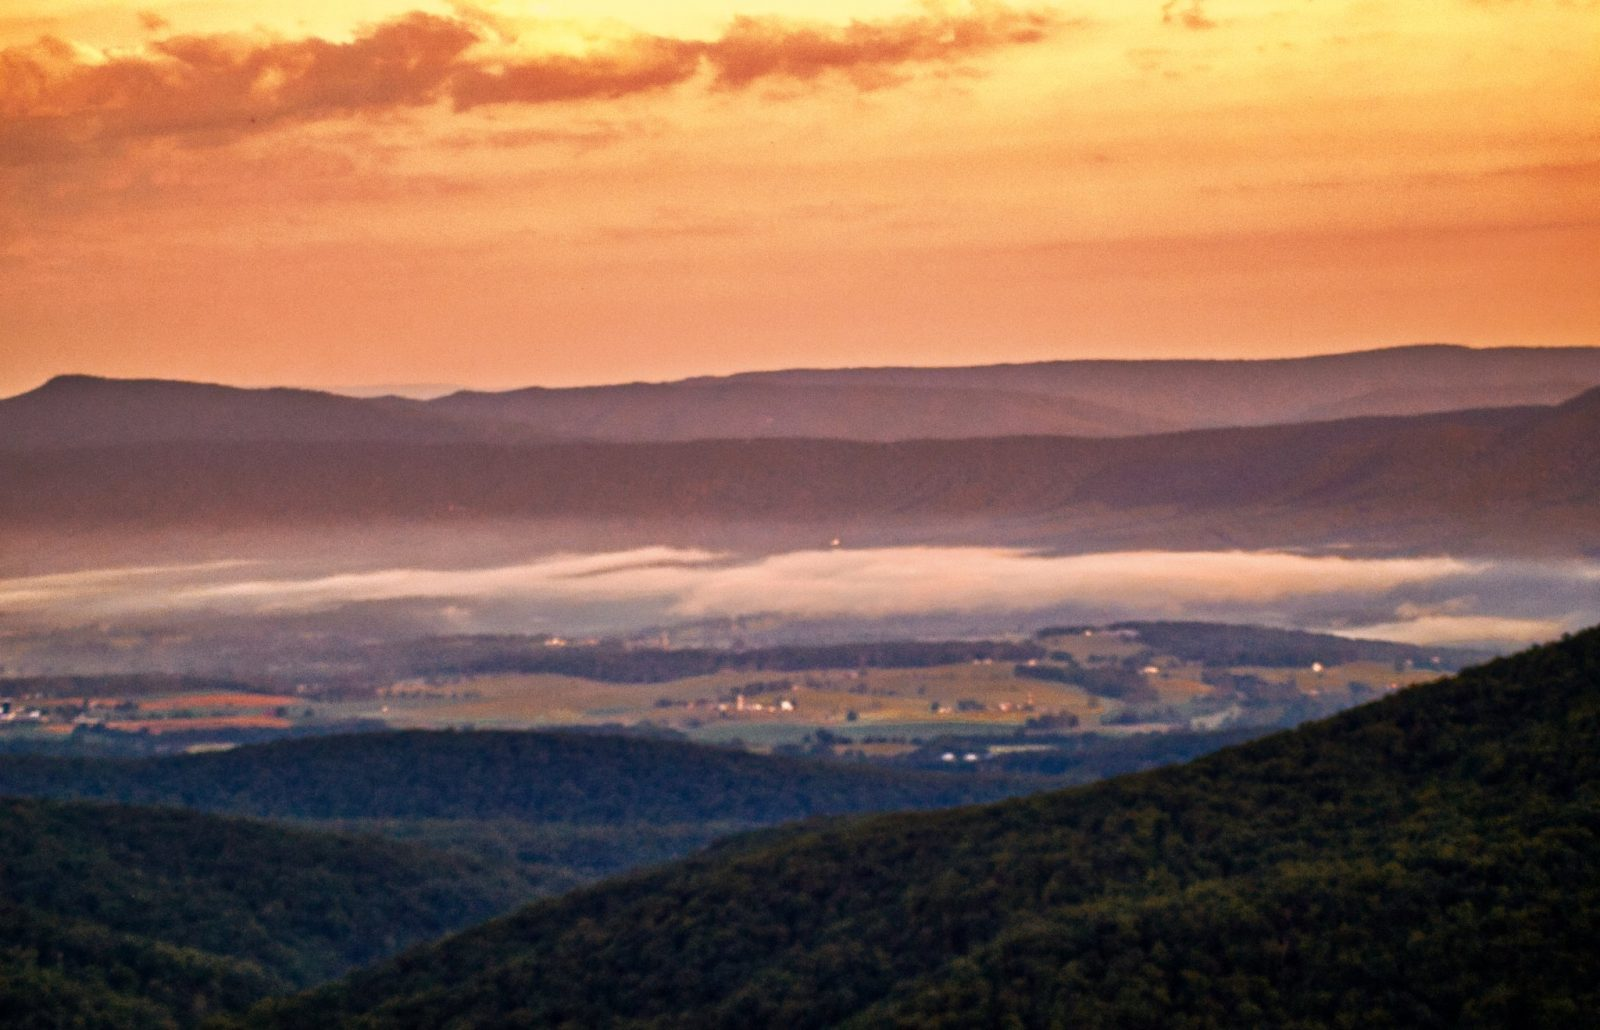 Sunrise Over the Foothill of Appalachia